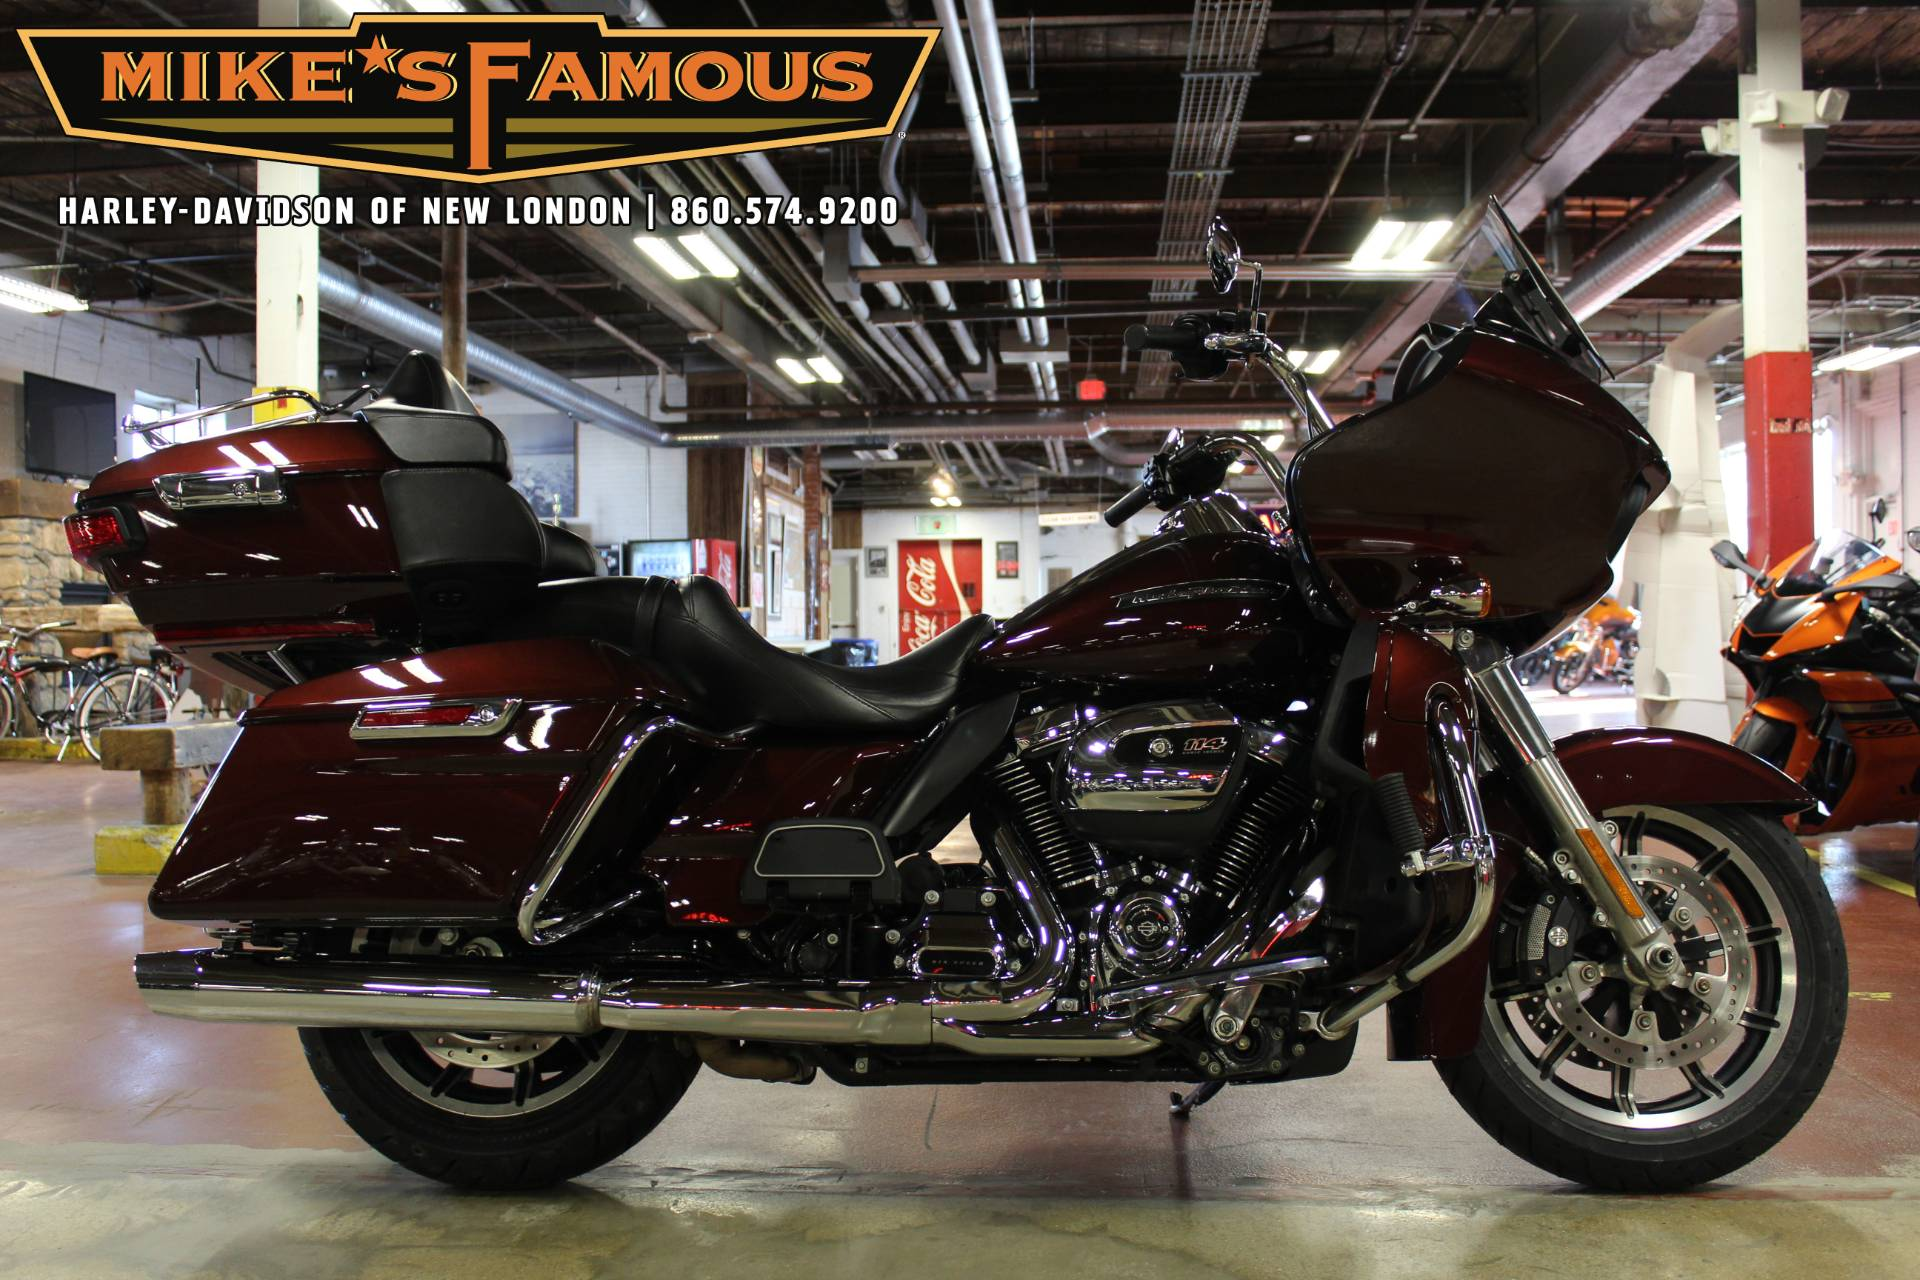 2019 Harley-Davidson Road Glide® Ultra in New London, Connecticut - Photo 1